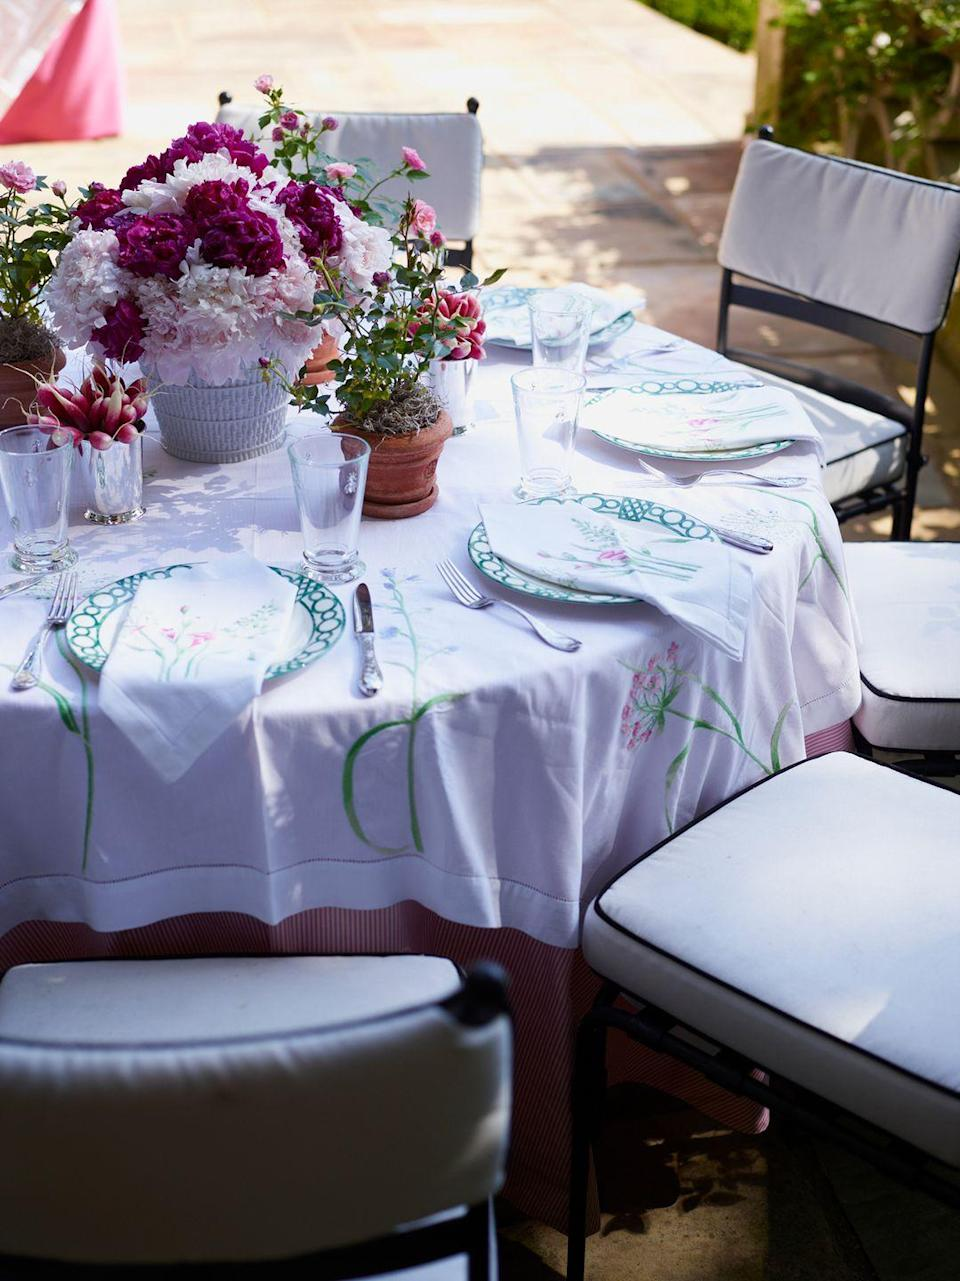 """<p>""""Repeating patterns of flowering plants and clipped greenery add drama and make for a festive table."""" <em>—<a href=""""https://danielledrollins.com/"""" rel=""""nofollow noopener"""" target=""""_blank"""" data-ylk=""""slk:Danielle Rollins"""" class=""""link rapid-noclick-resp"""">Danielle Rollins</a>, Interior Designer </em><br></p>"""